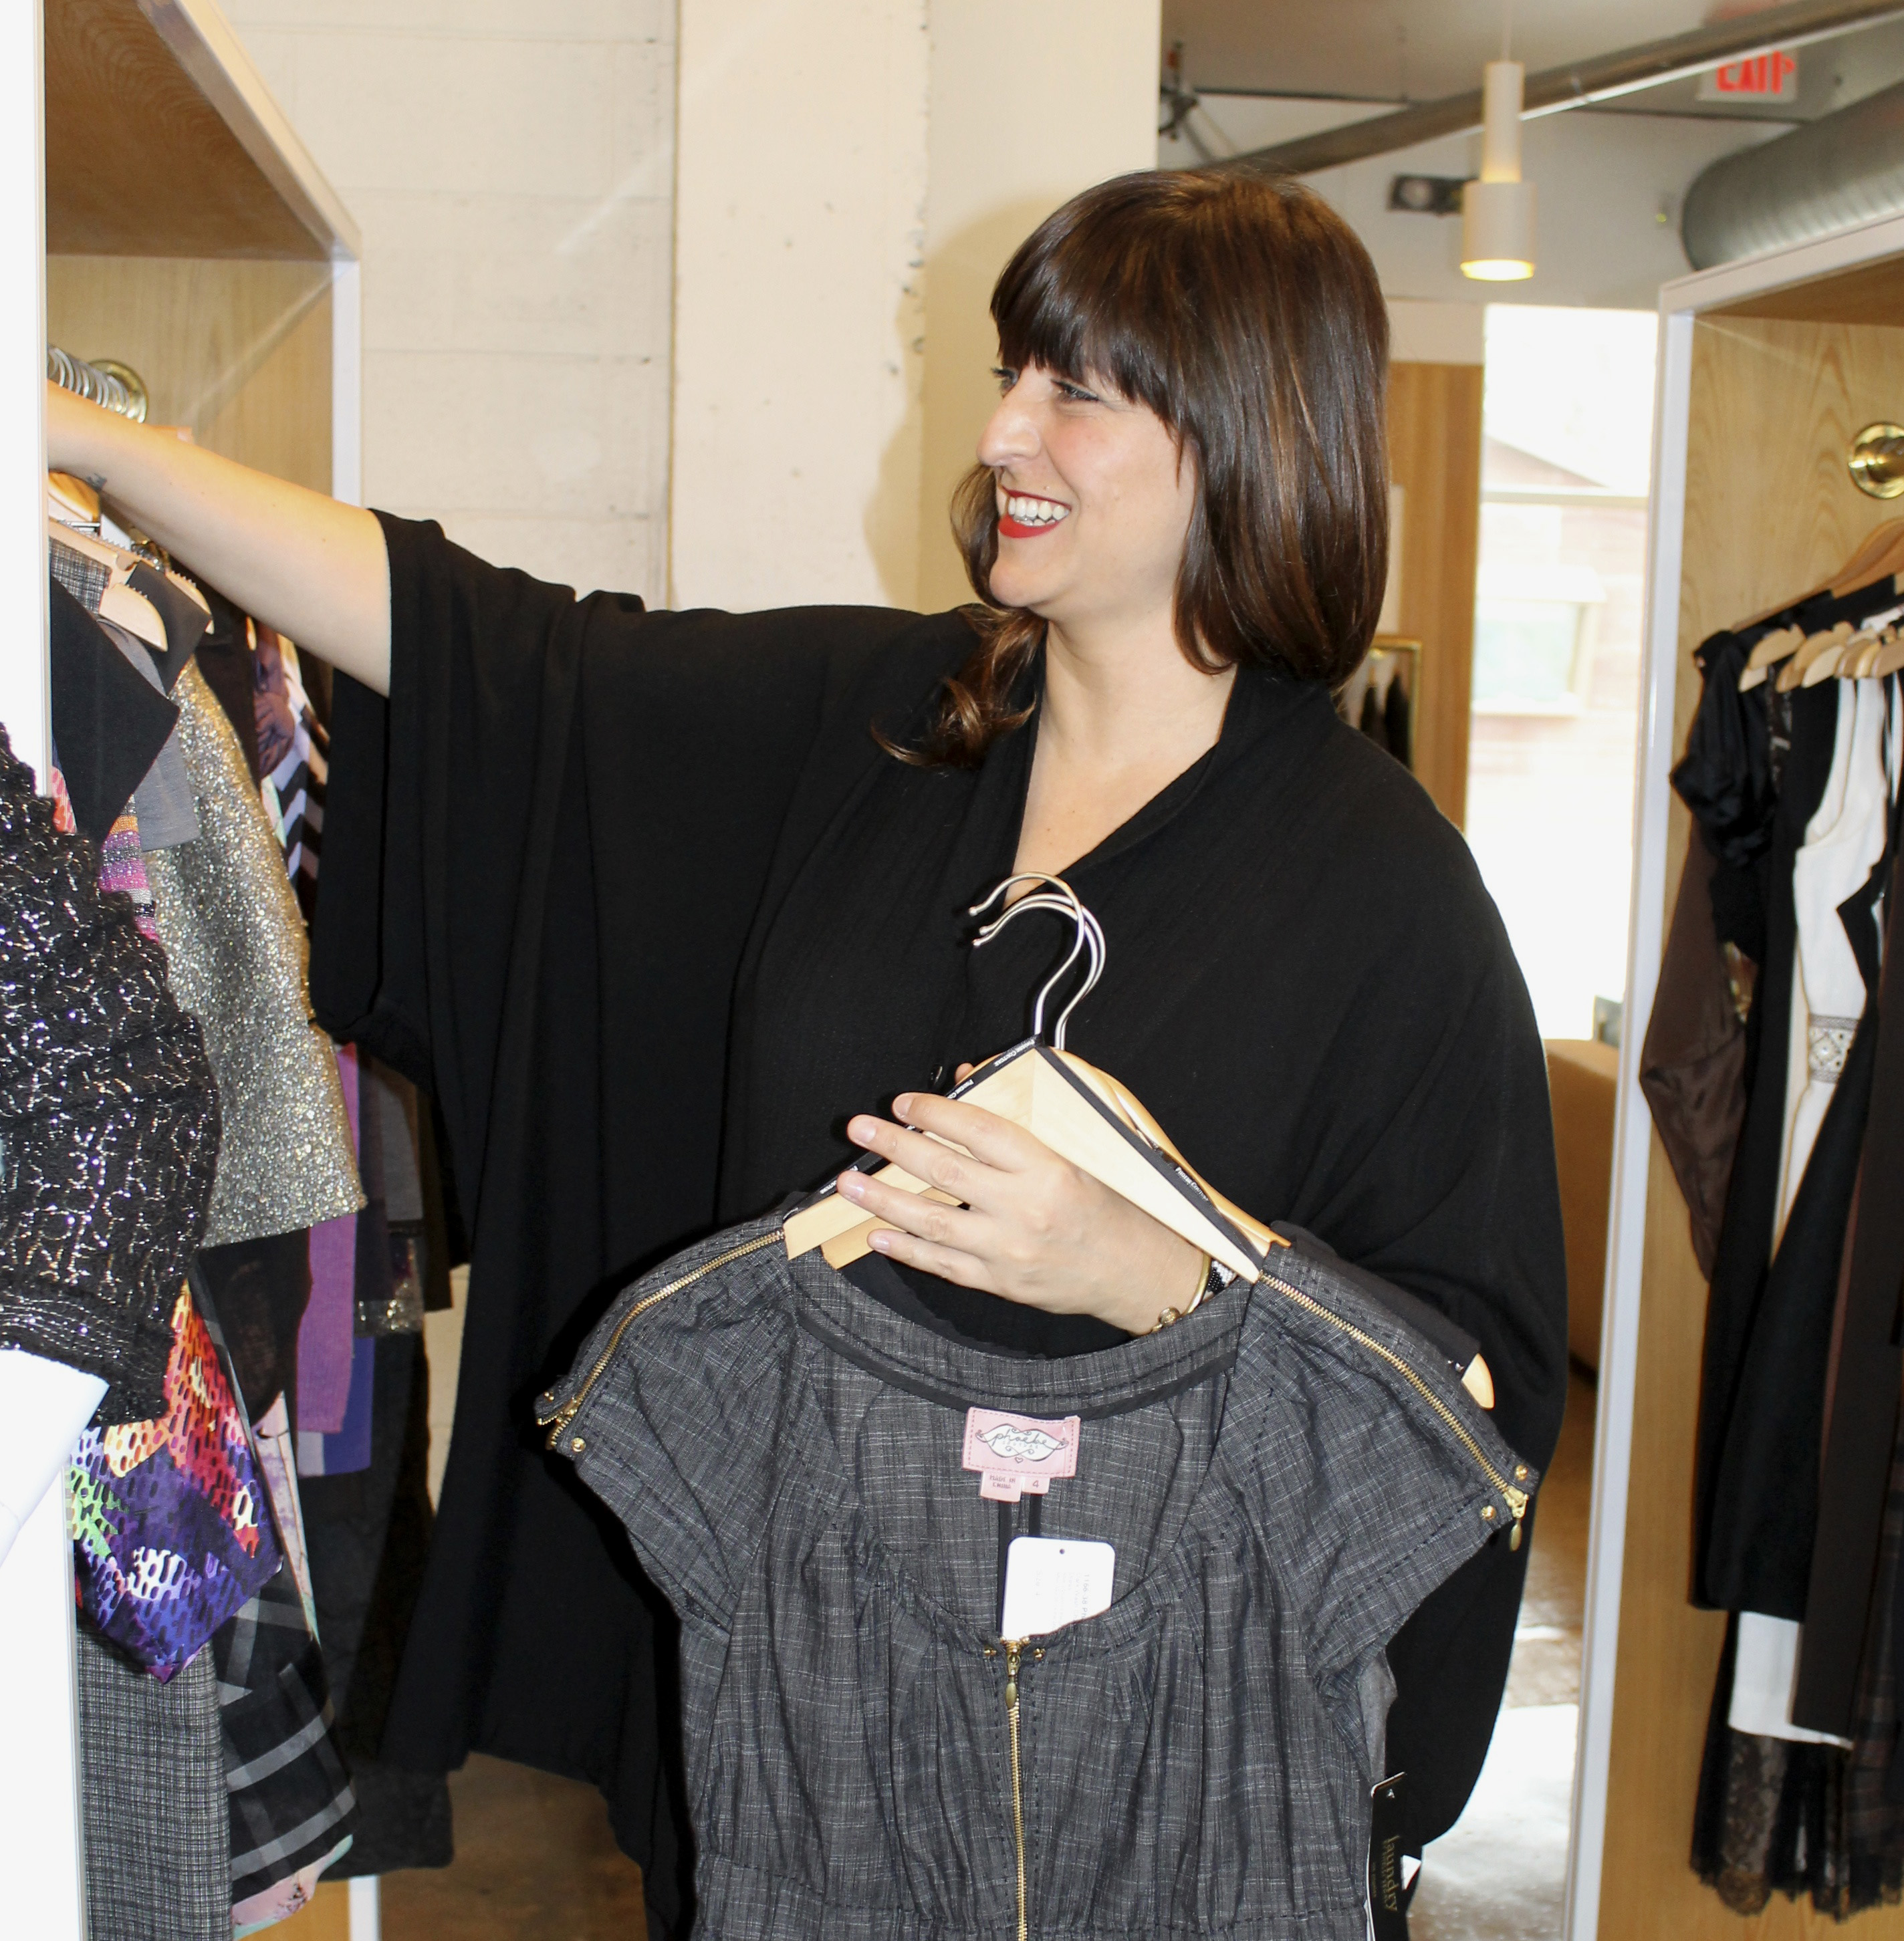 Store manager Sari Warenoff fills the racks with the store's newest goodies